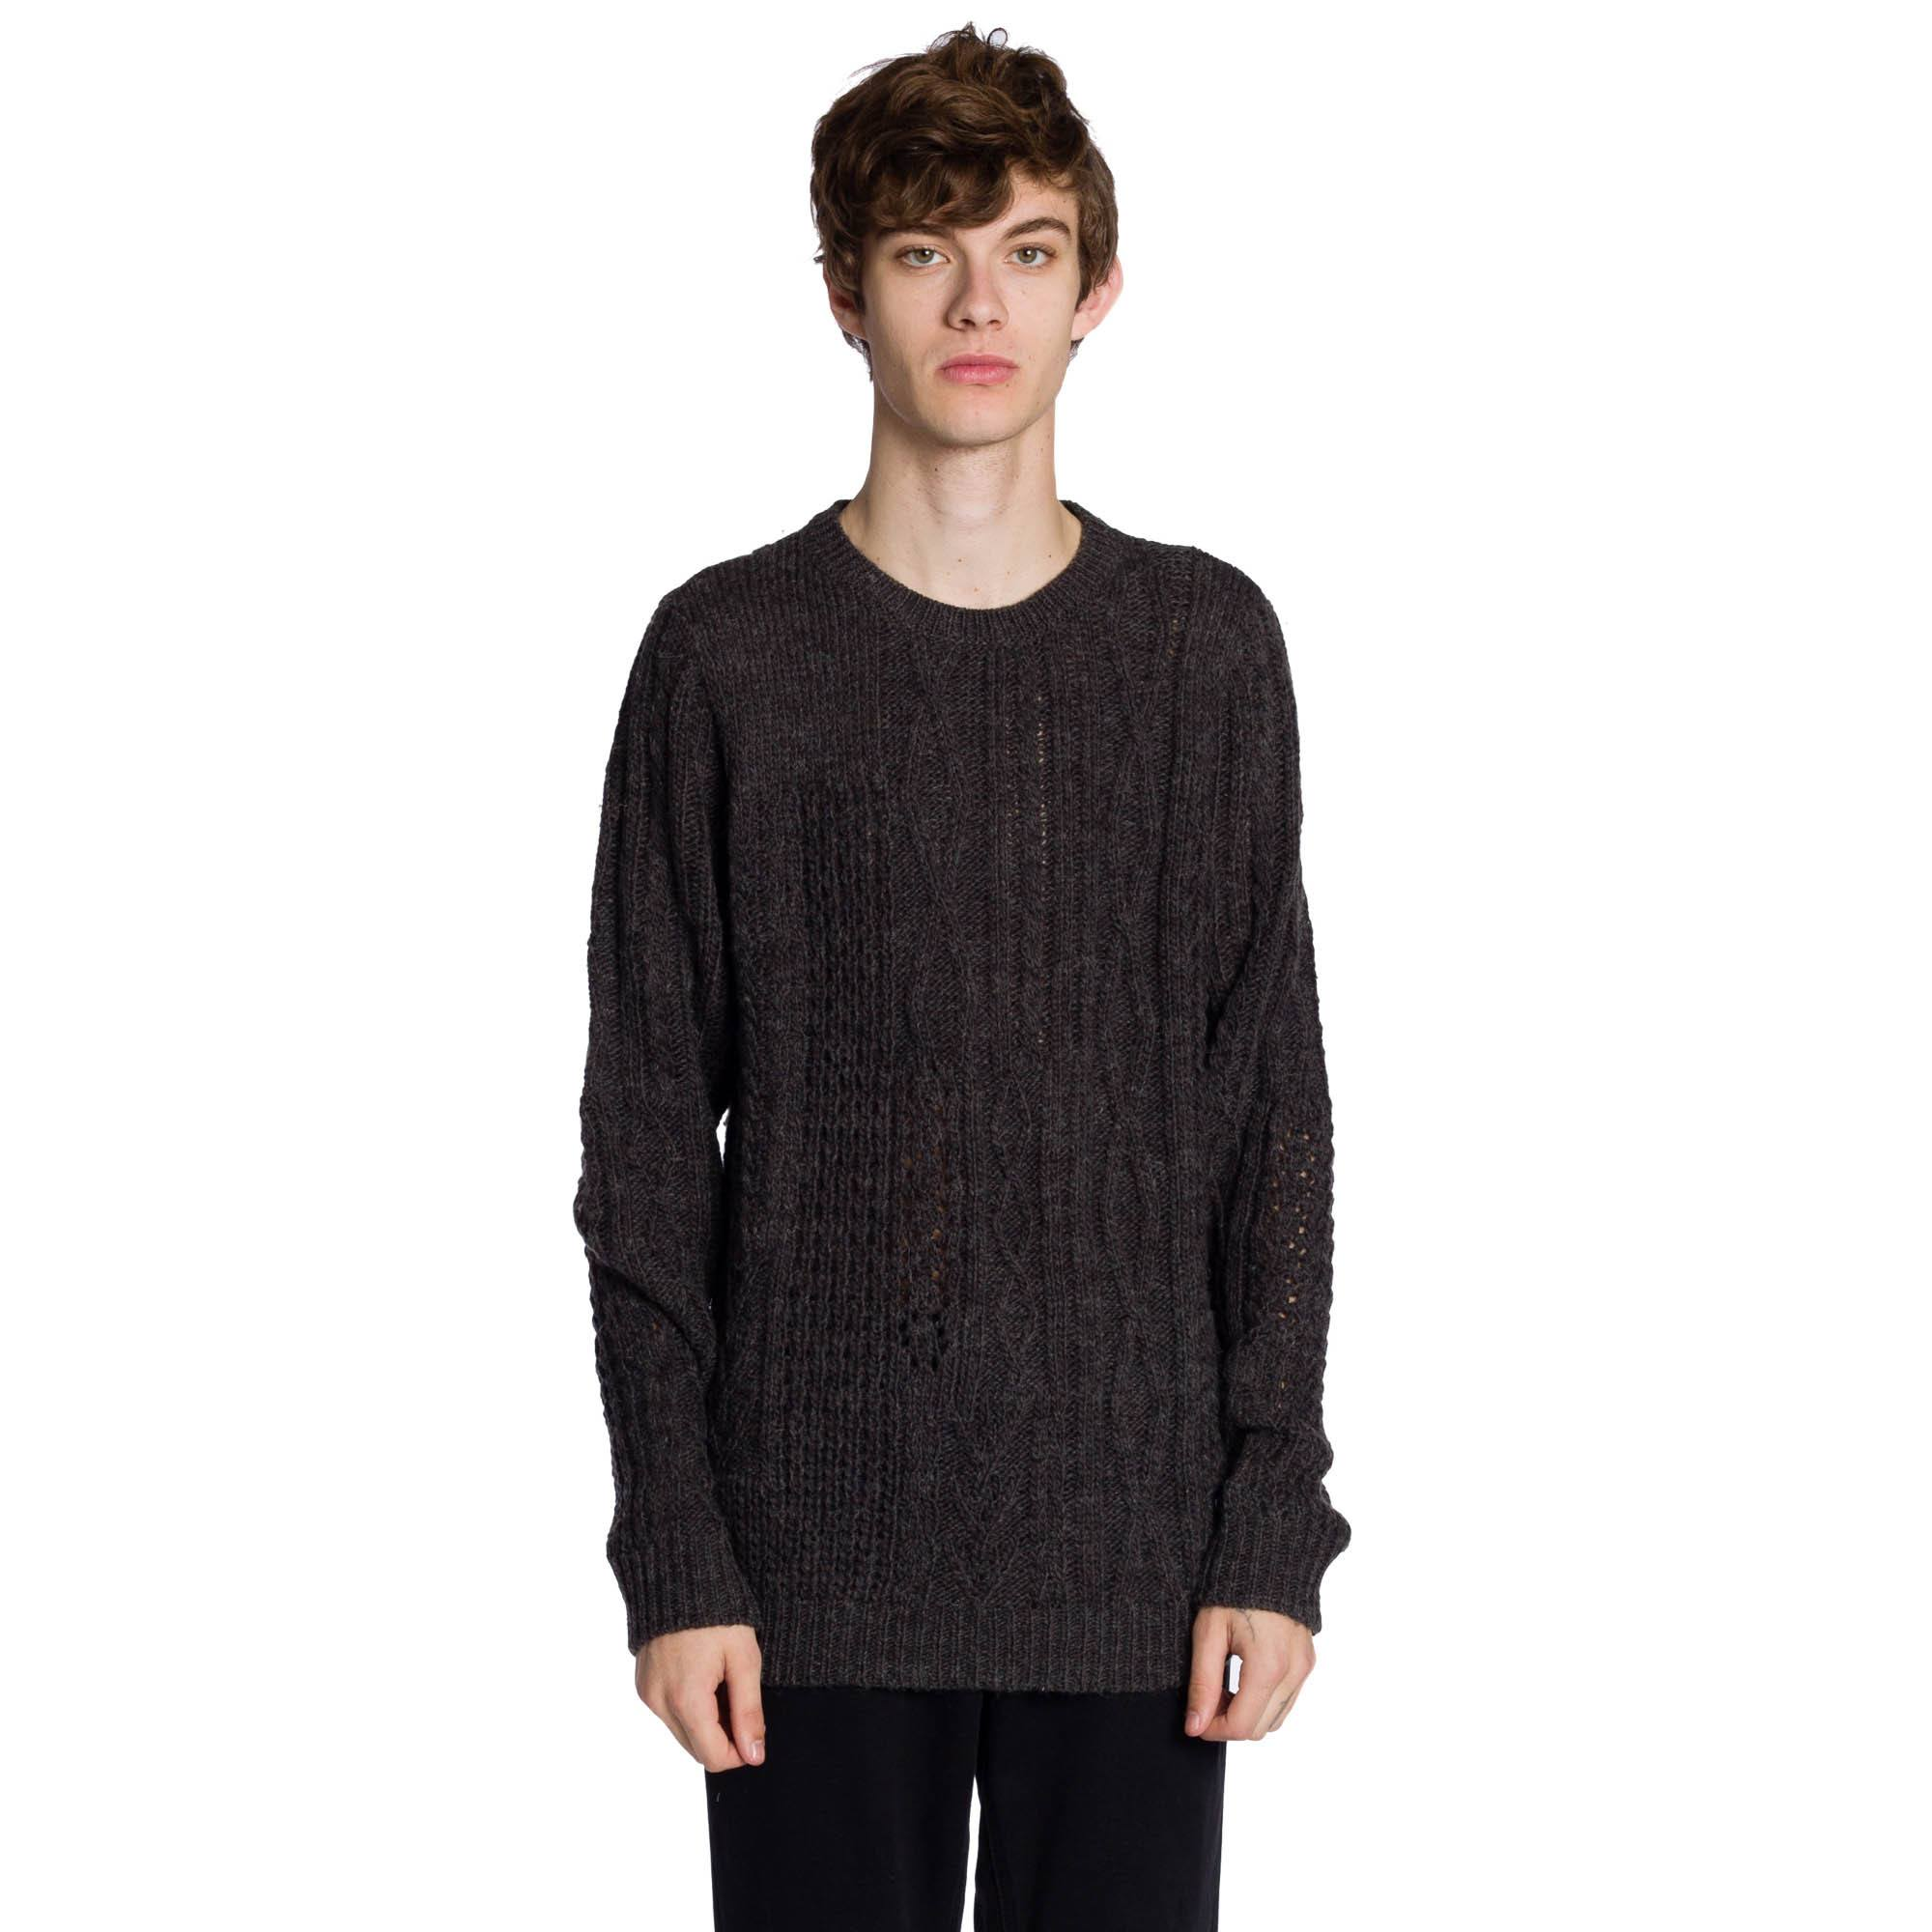 Mixed Up Sweater - Charcoal